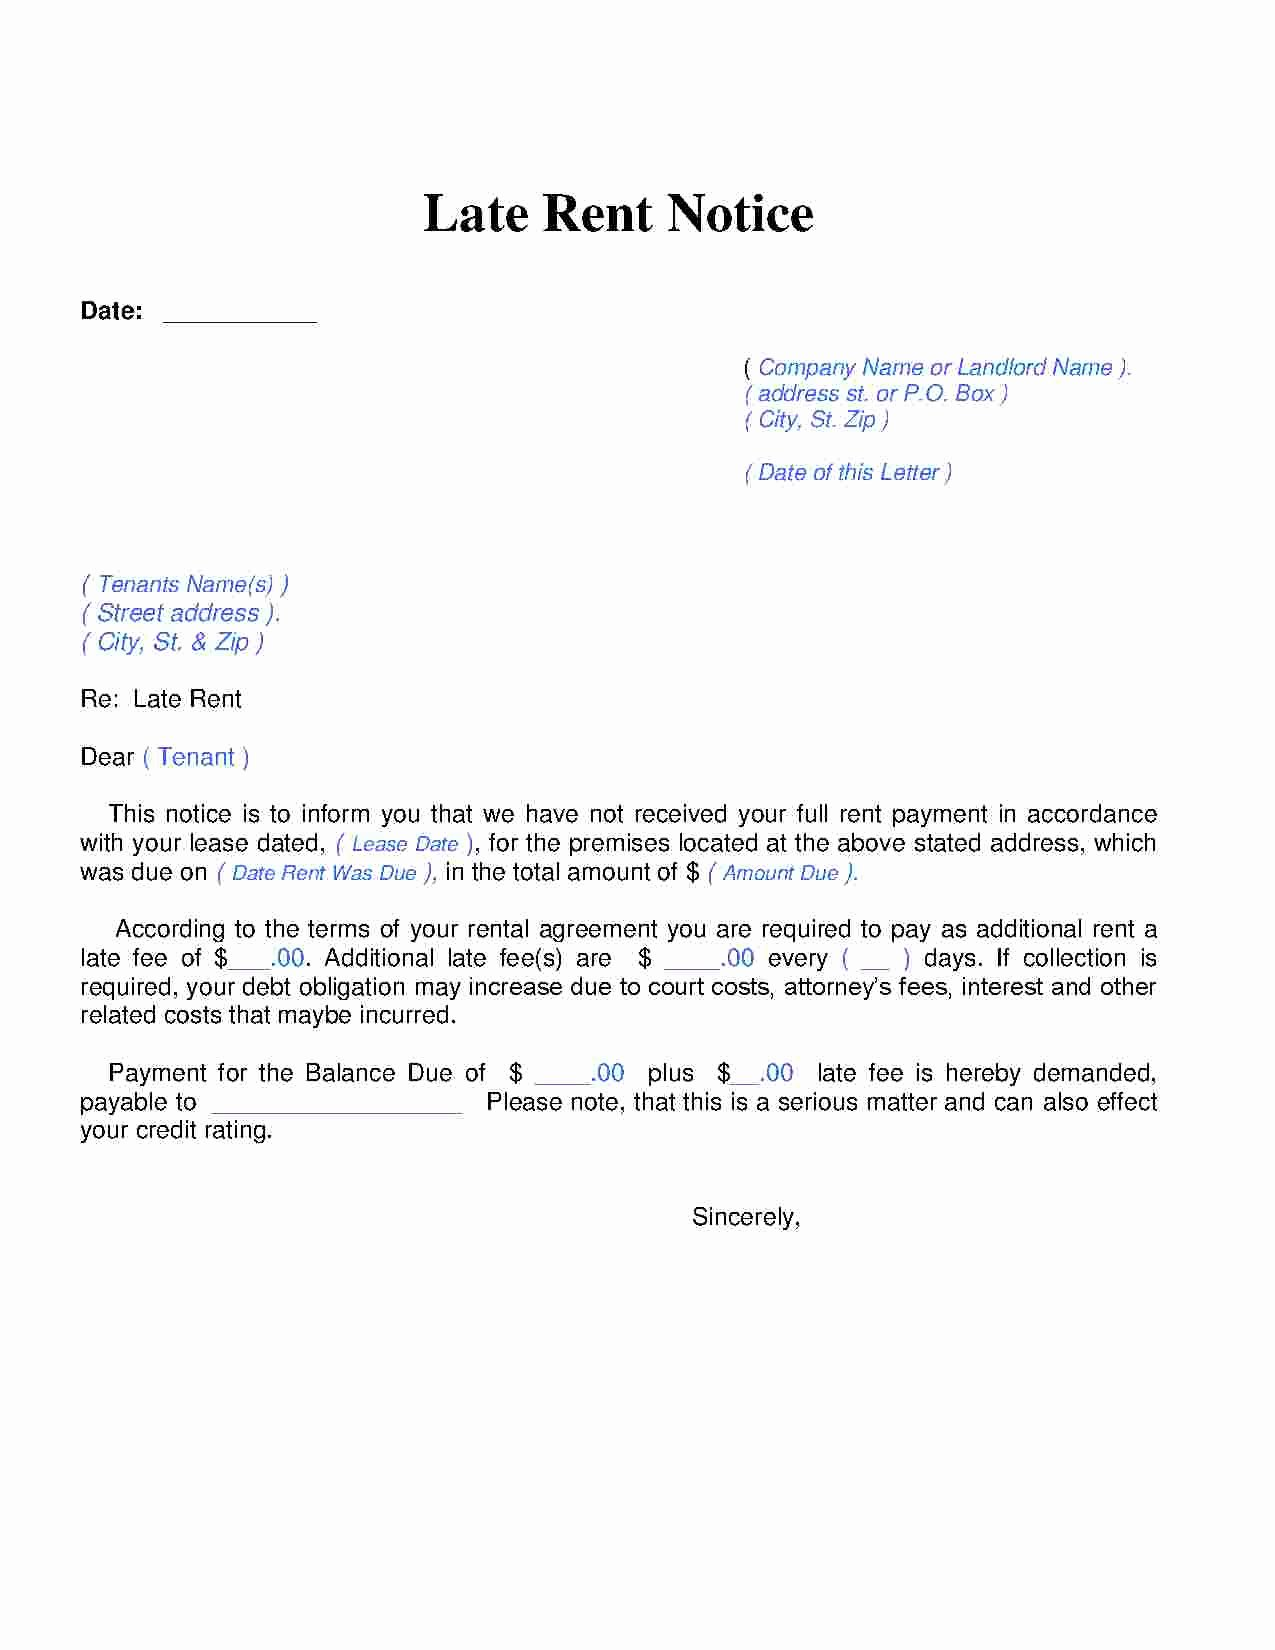 Late Rent Notice Template Free Beautiful Download Late Rent Notice Style 14 Template for Free at